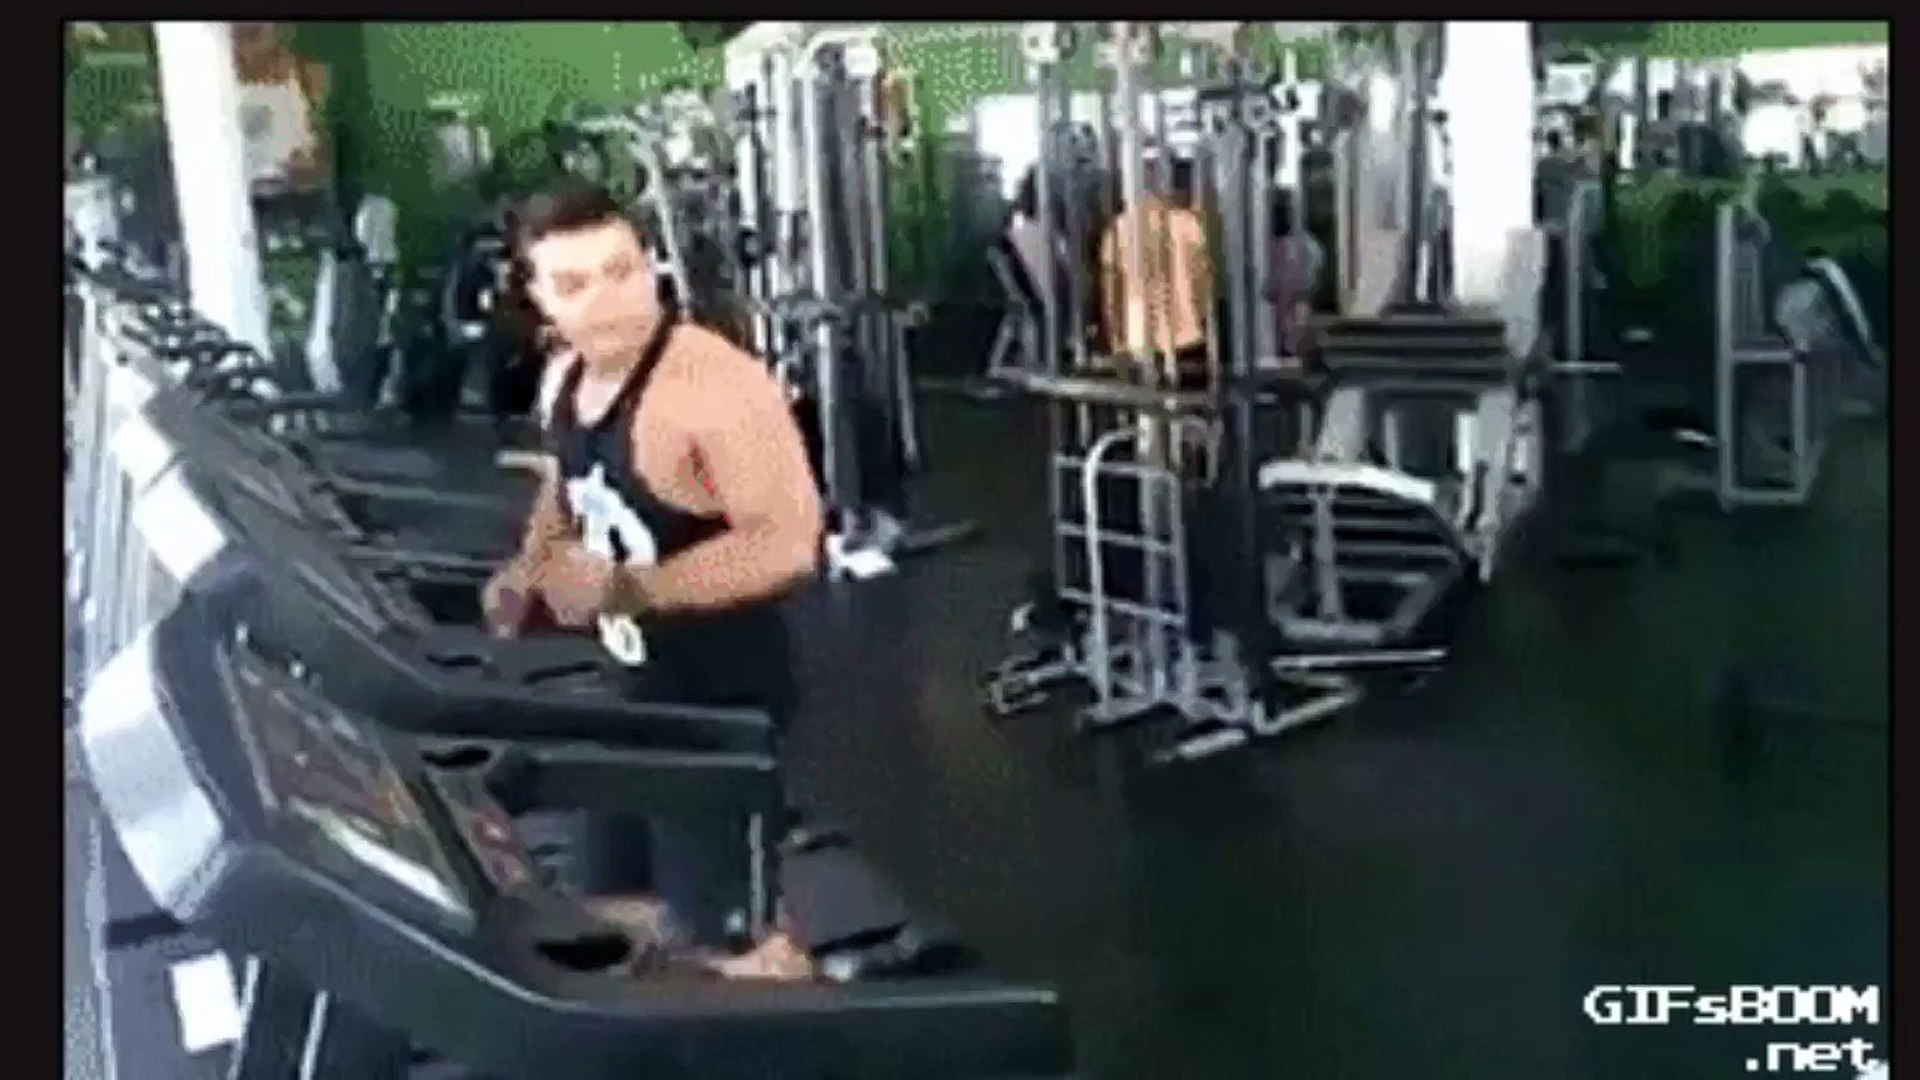 Fun things to do at the gym